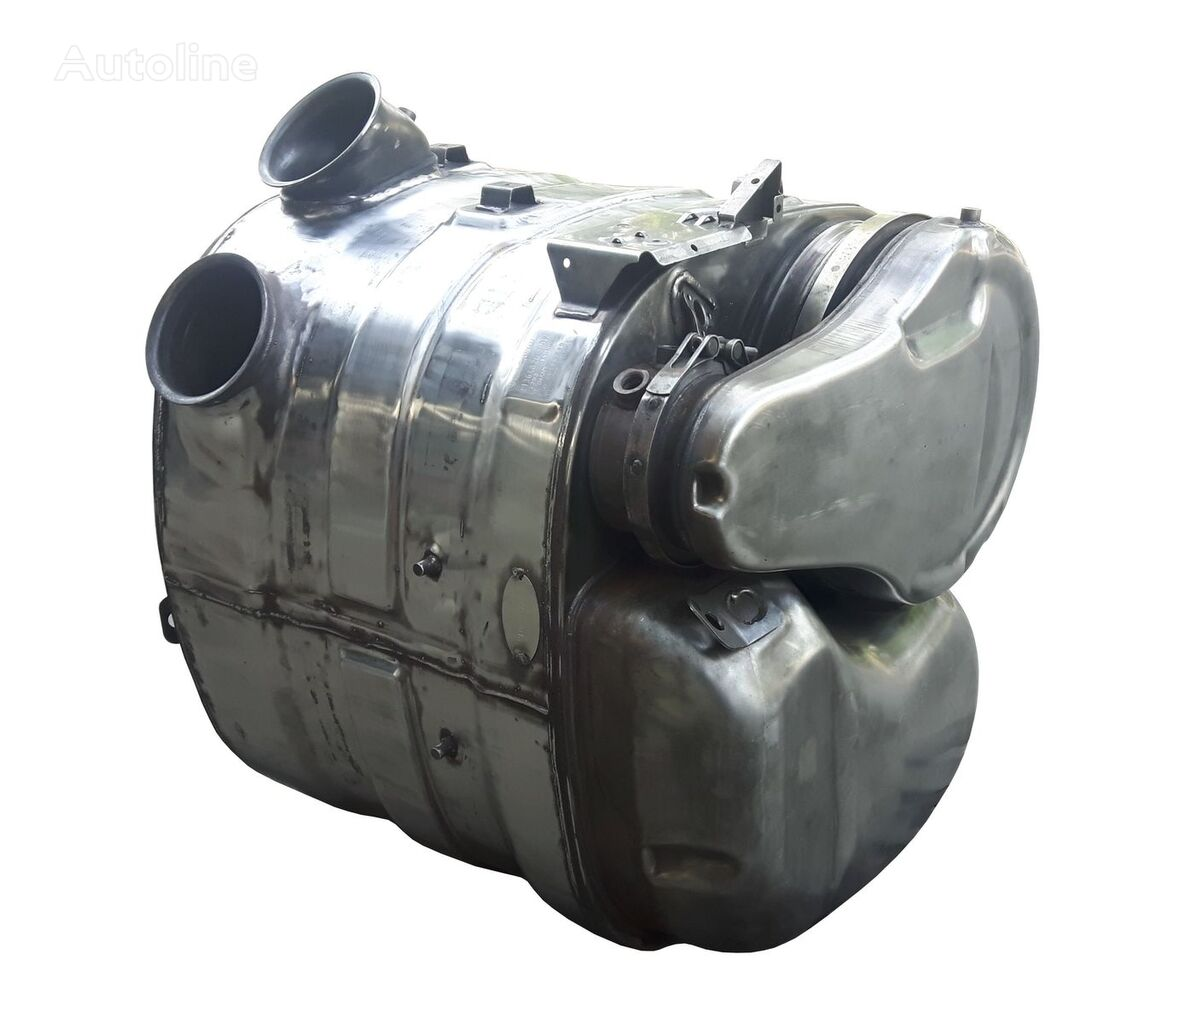 IVECO Euro 6 (21364820) catalyst for IVECO Stralis truck